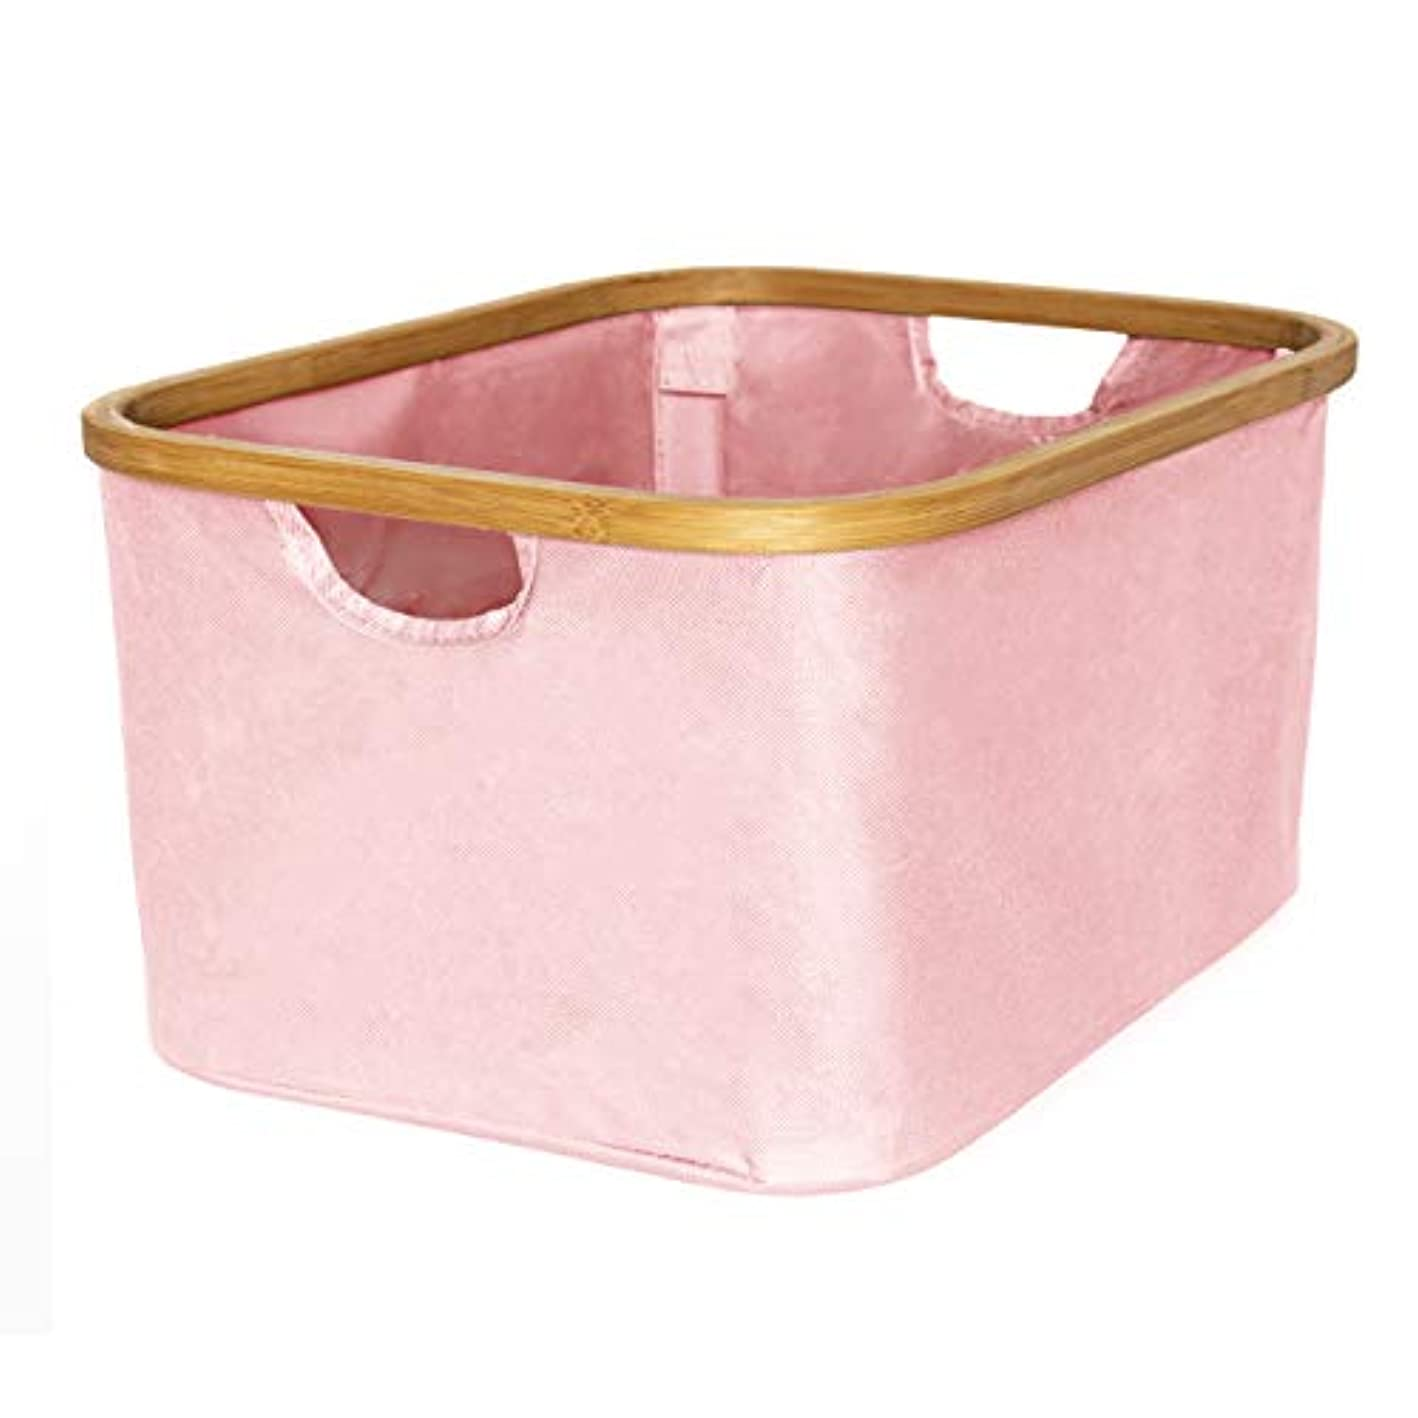 SPRUCED Laundry Basket Foldable Small with Handles - Portable Laundry Basket Collapsible Hamper | Canvas and Bamboo | Fabric Storage Bins for Clothes, Organization, Sorting (Pink)